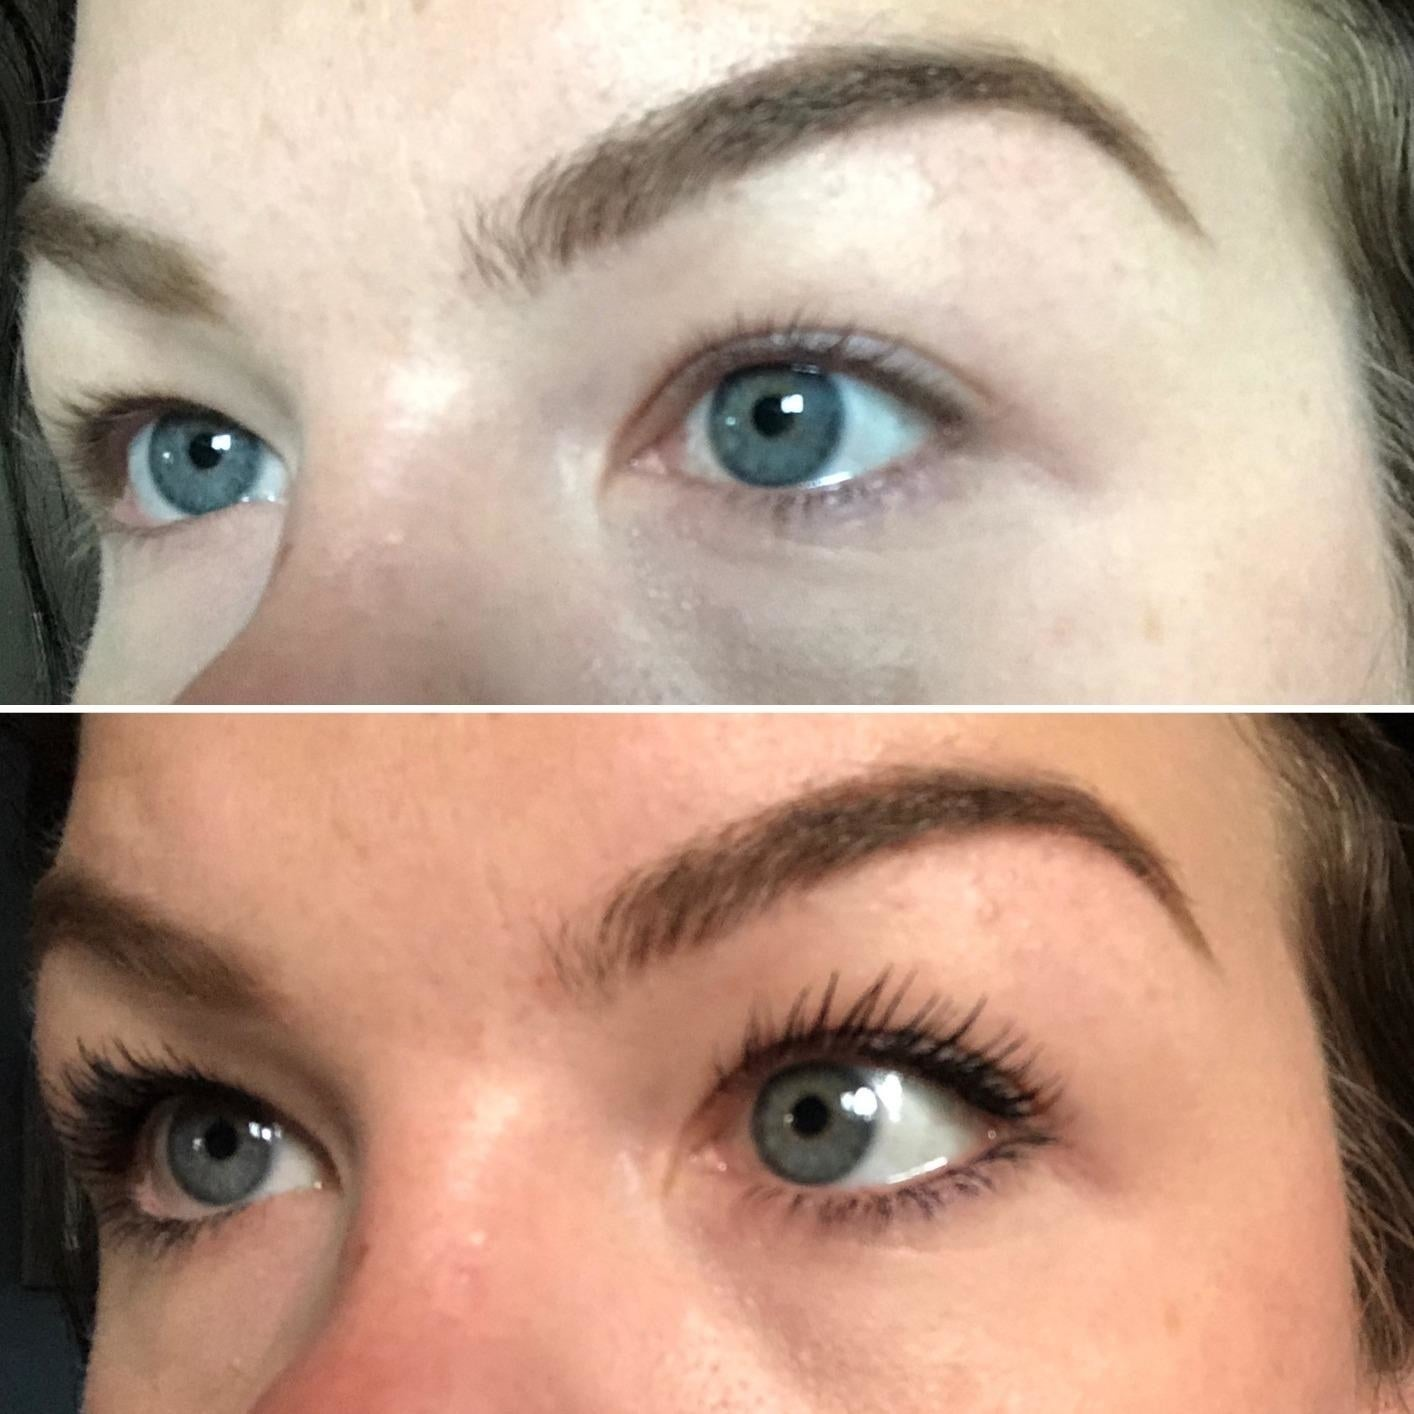 before and after showing the mascara made their light lashes visible and lengthened